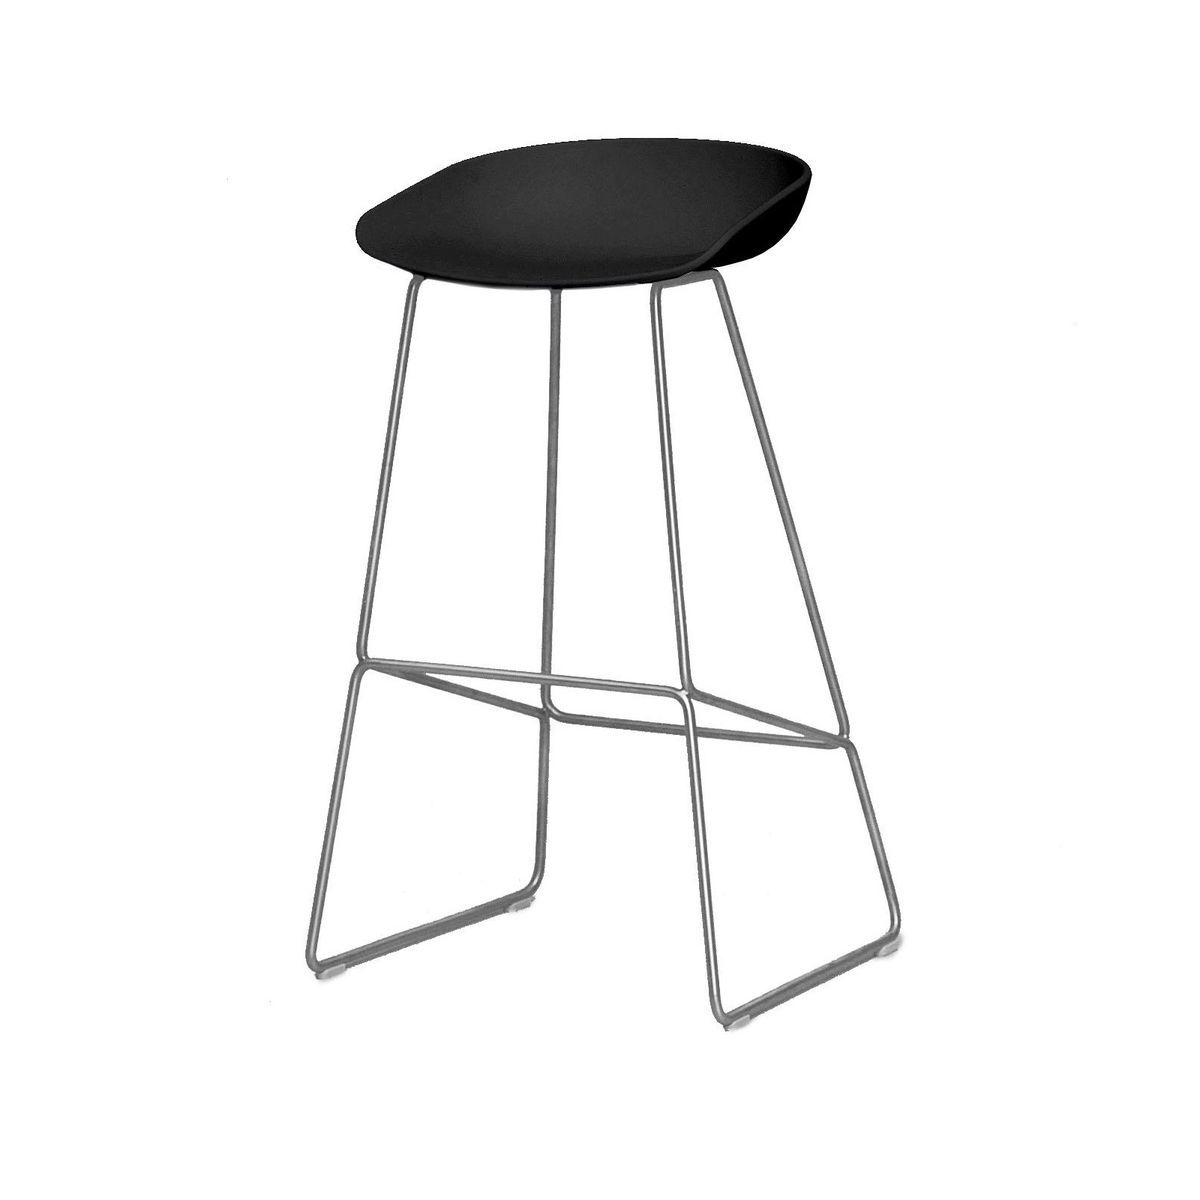 About A Stool Aas38 Bar Stool 65 76cm Hay